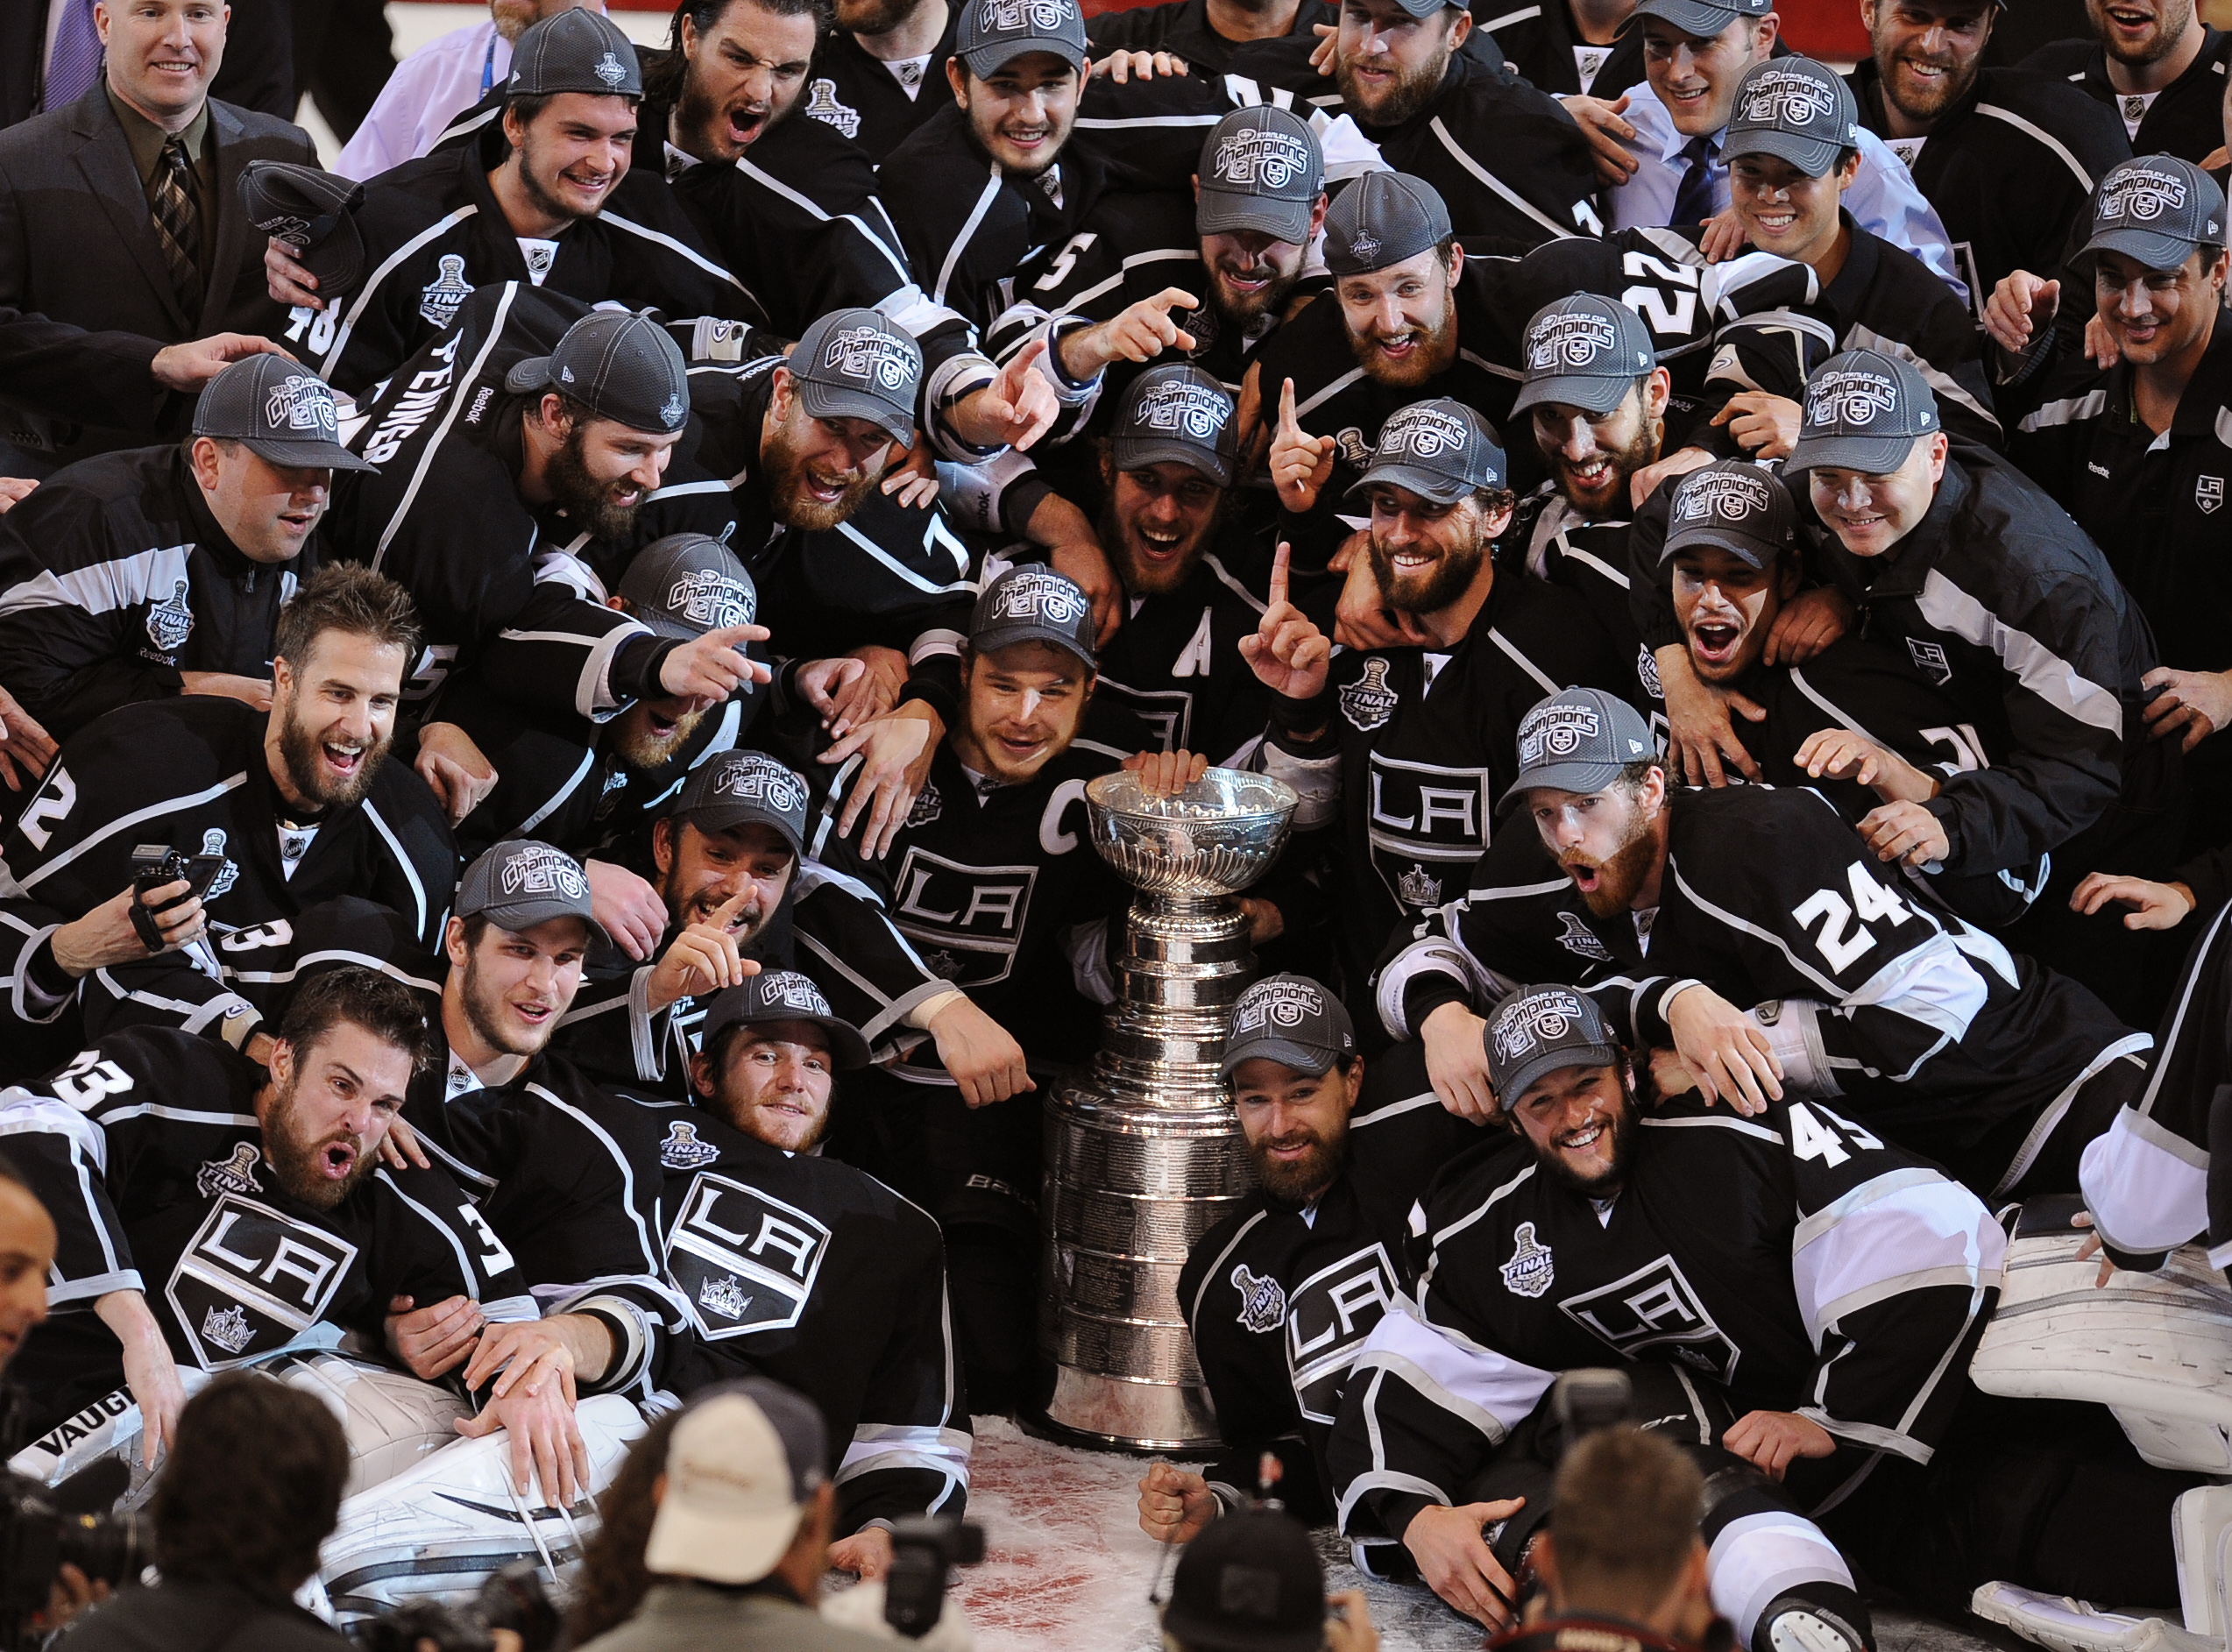 186b57e7554 Happy Stanley Cup-iversary! 5 Years Ago Today Dreams Came True ...